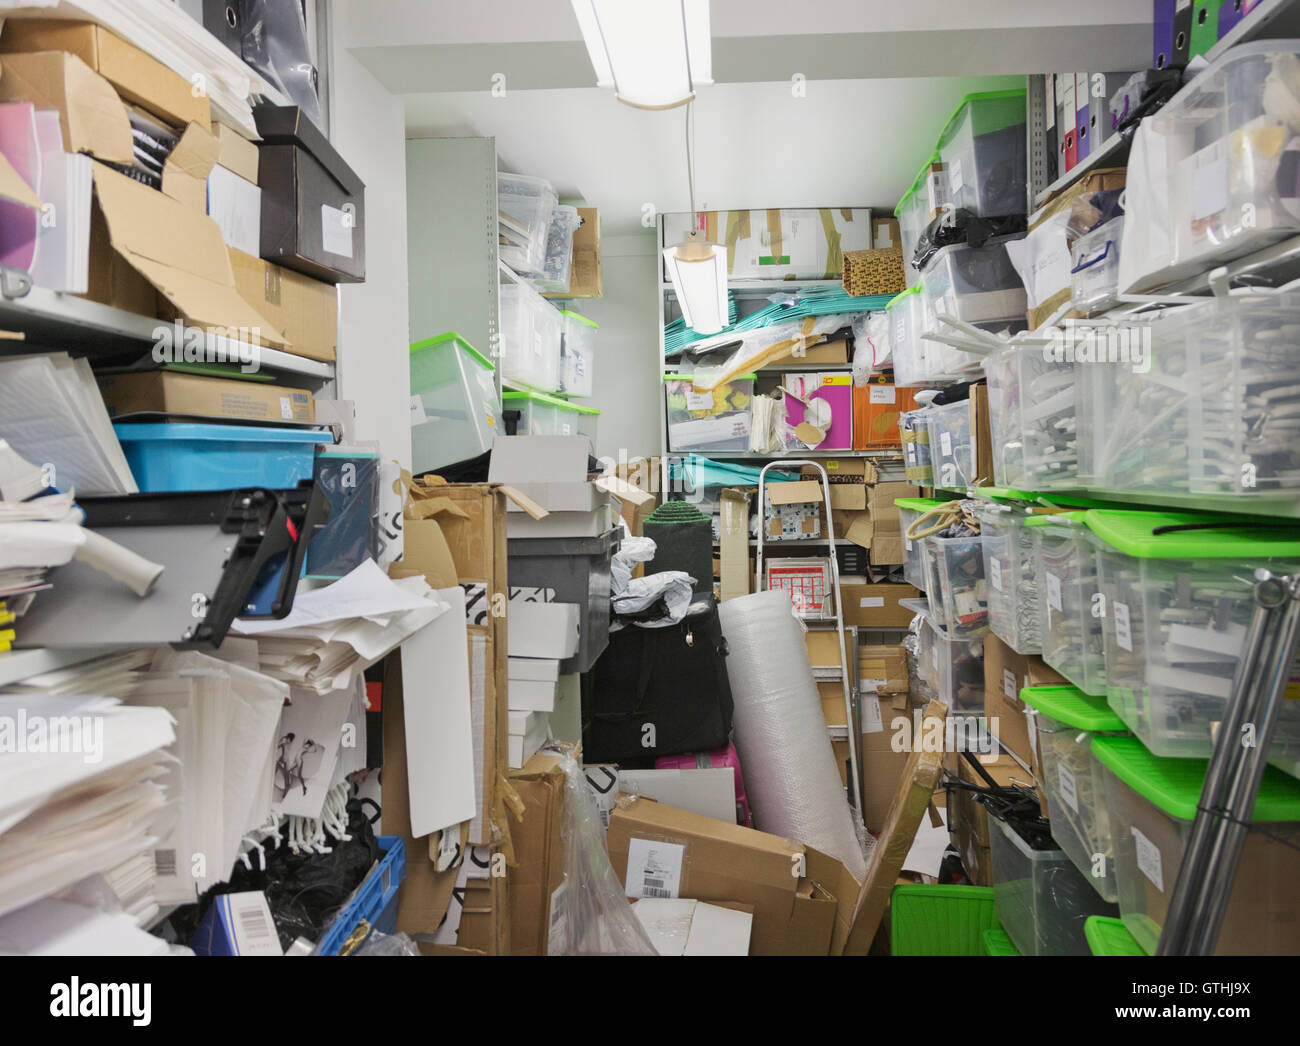 Messy Office Storage Closet